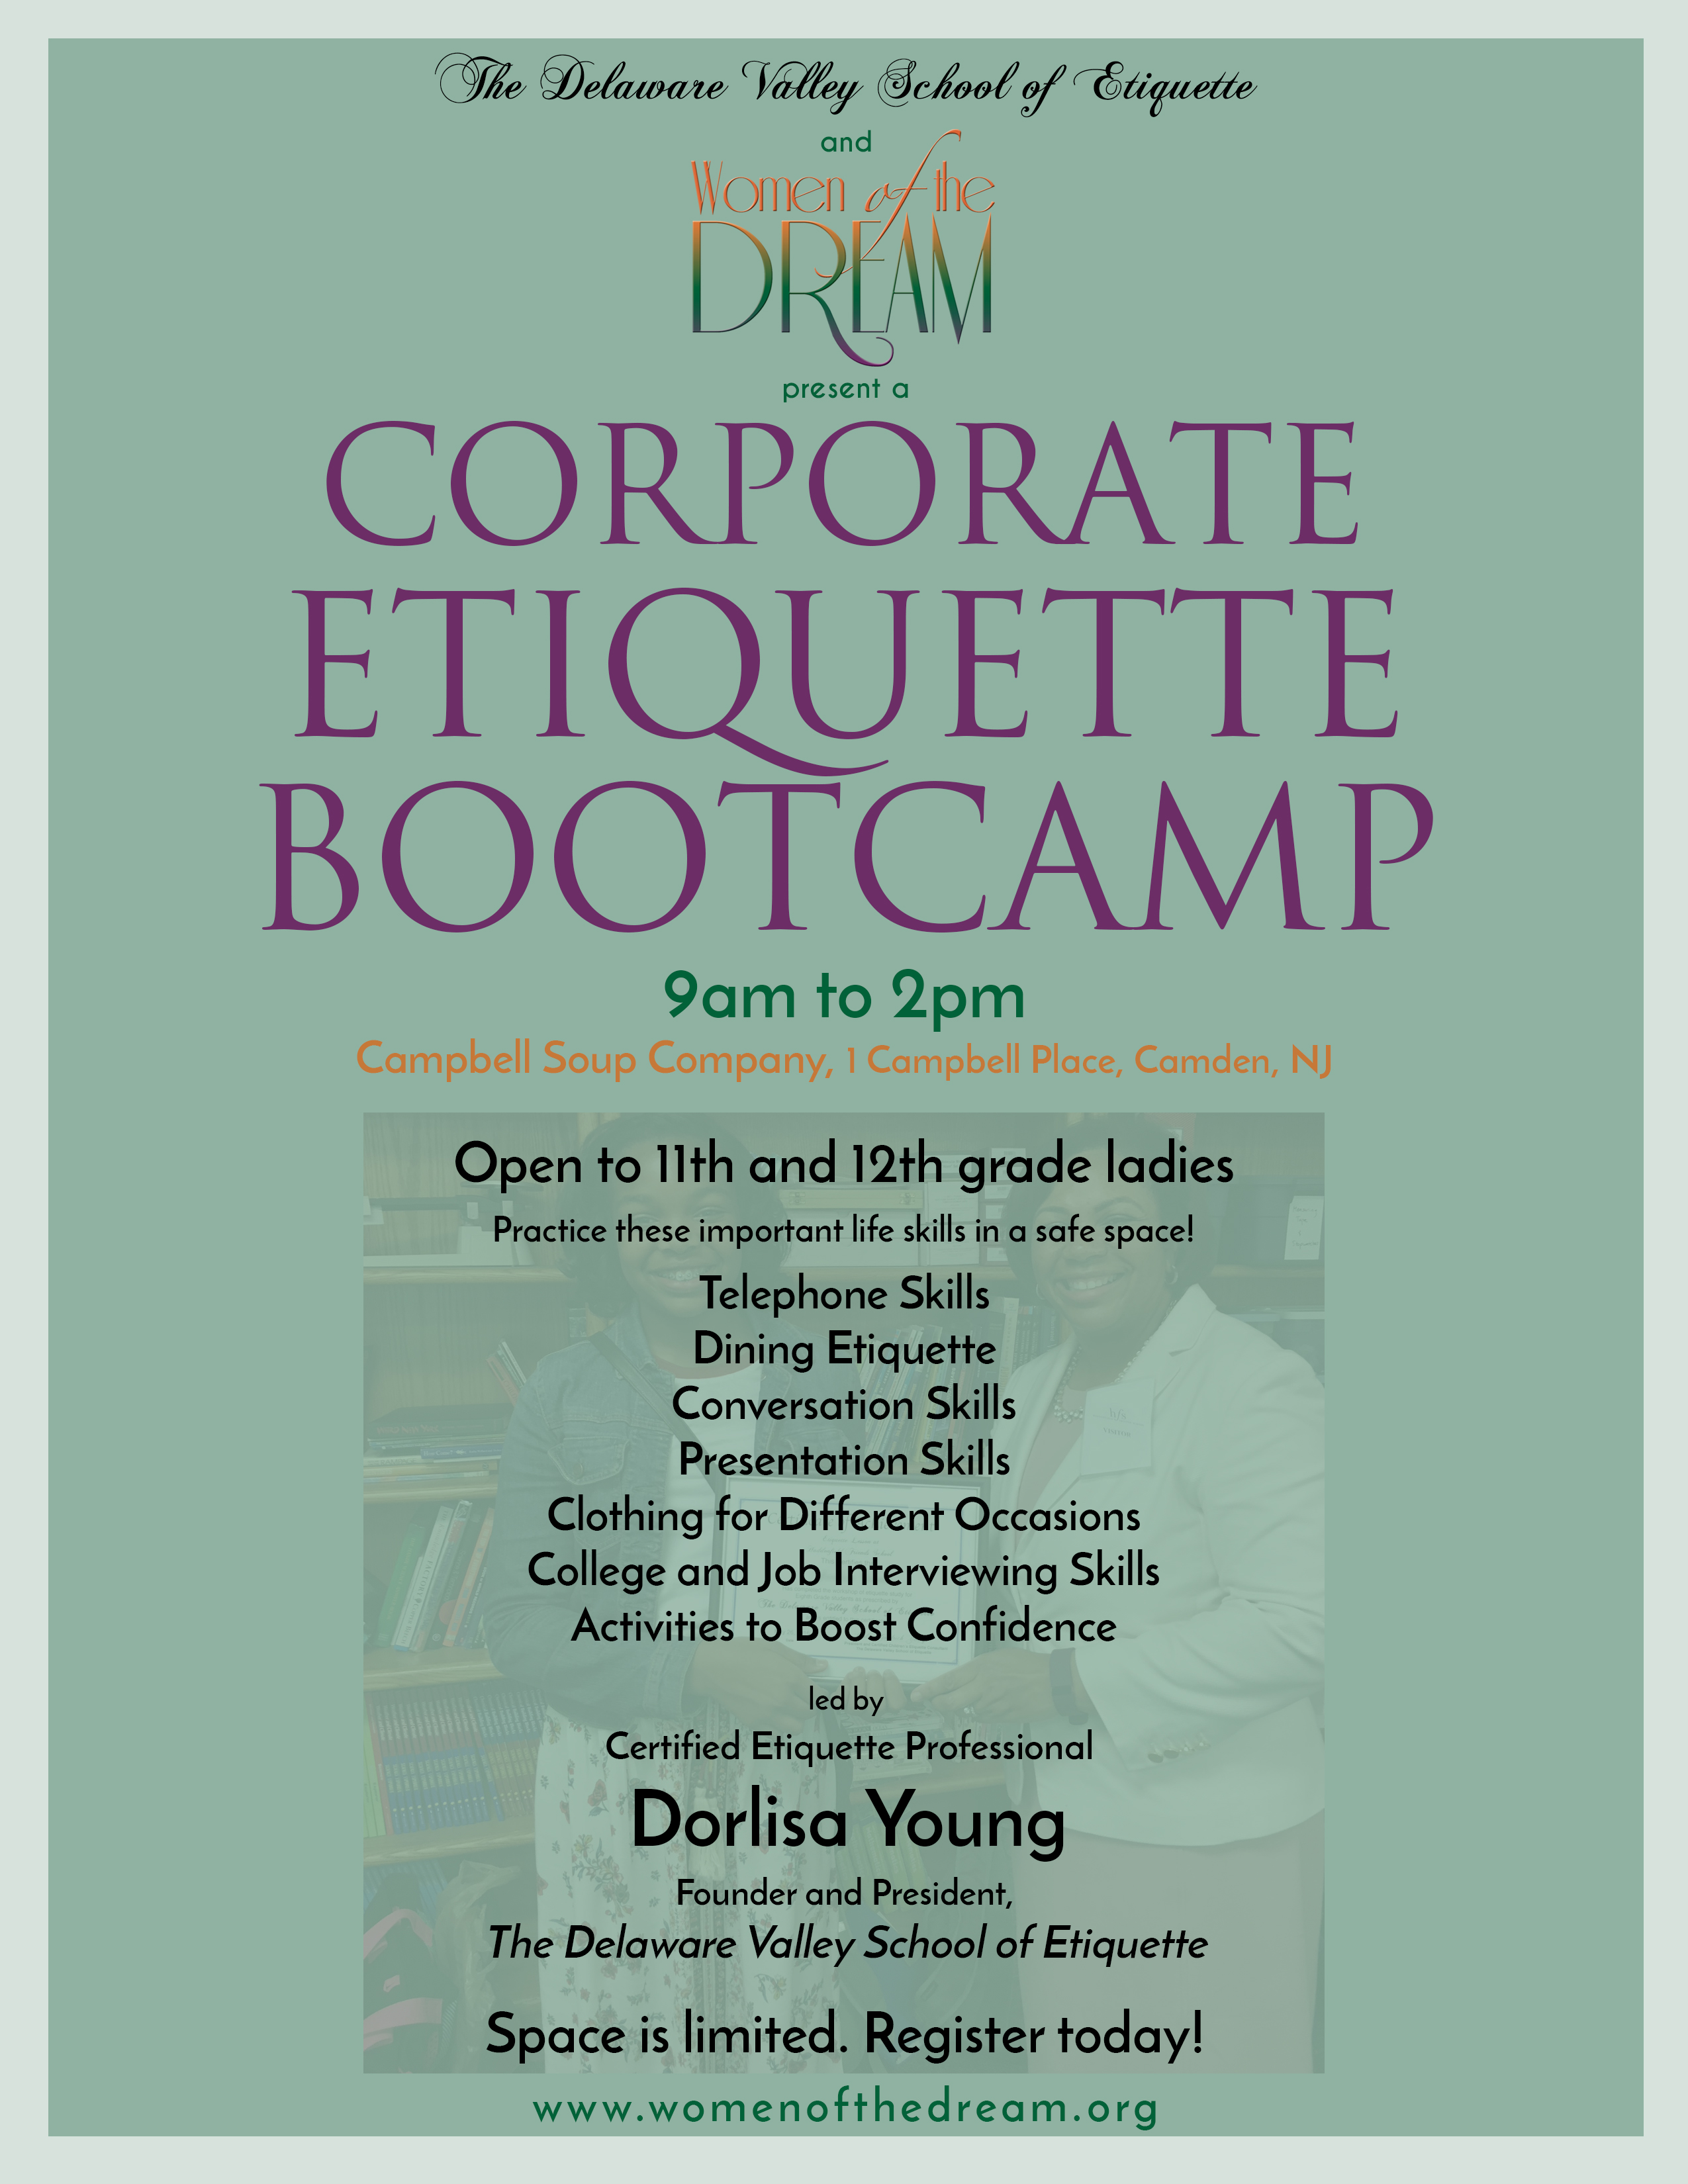 Corporate Bootcamp Flyer